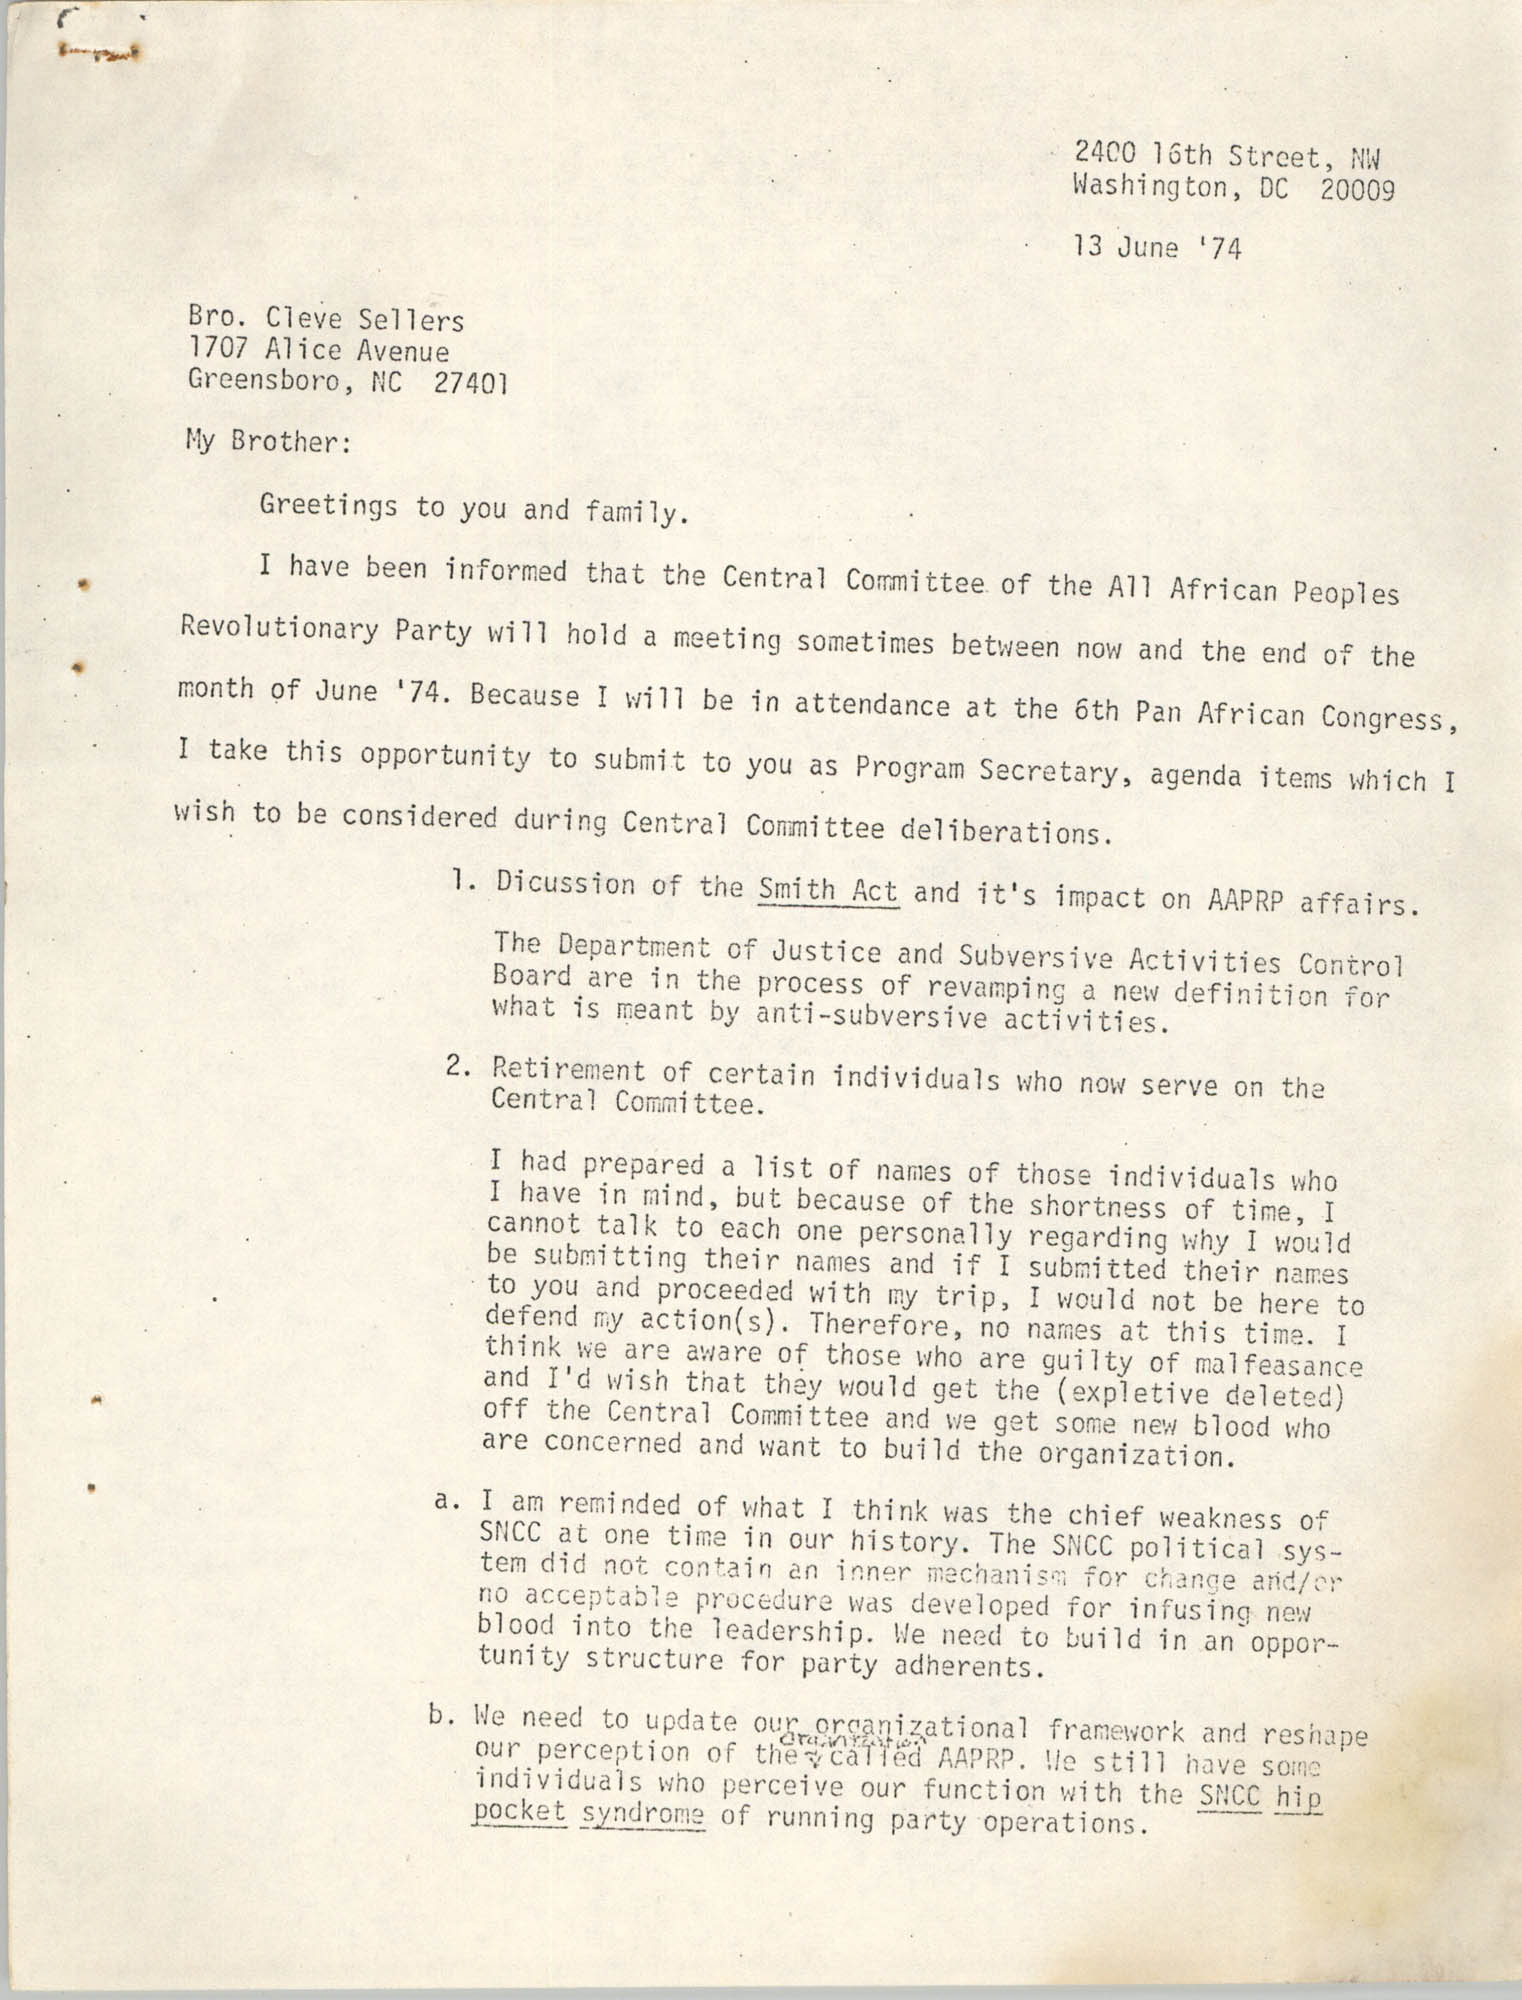 Letter from Jan Bailey to Cleveland Sellers, June 13, 1974